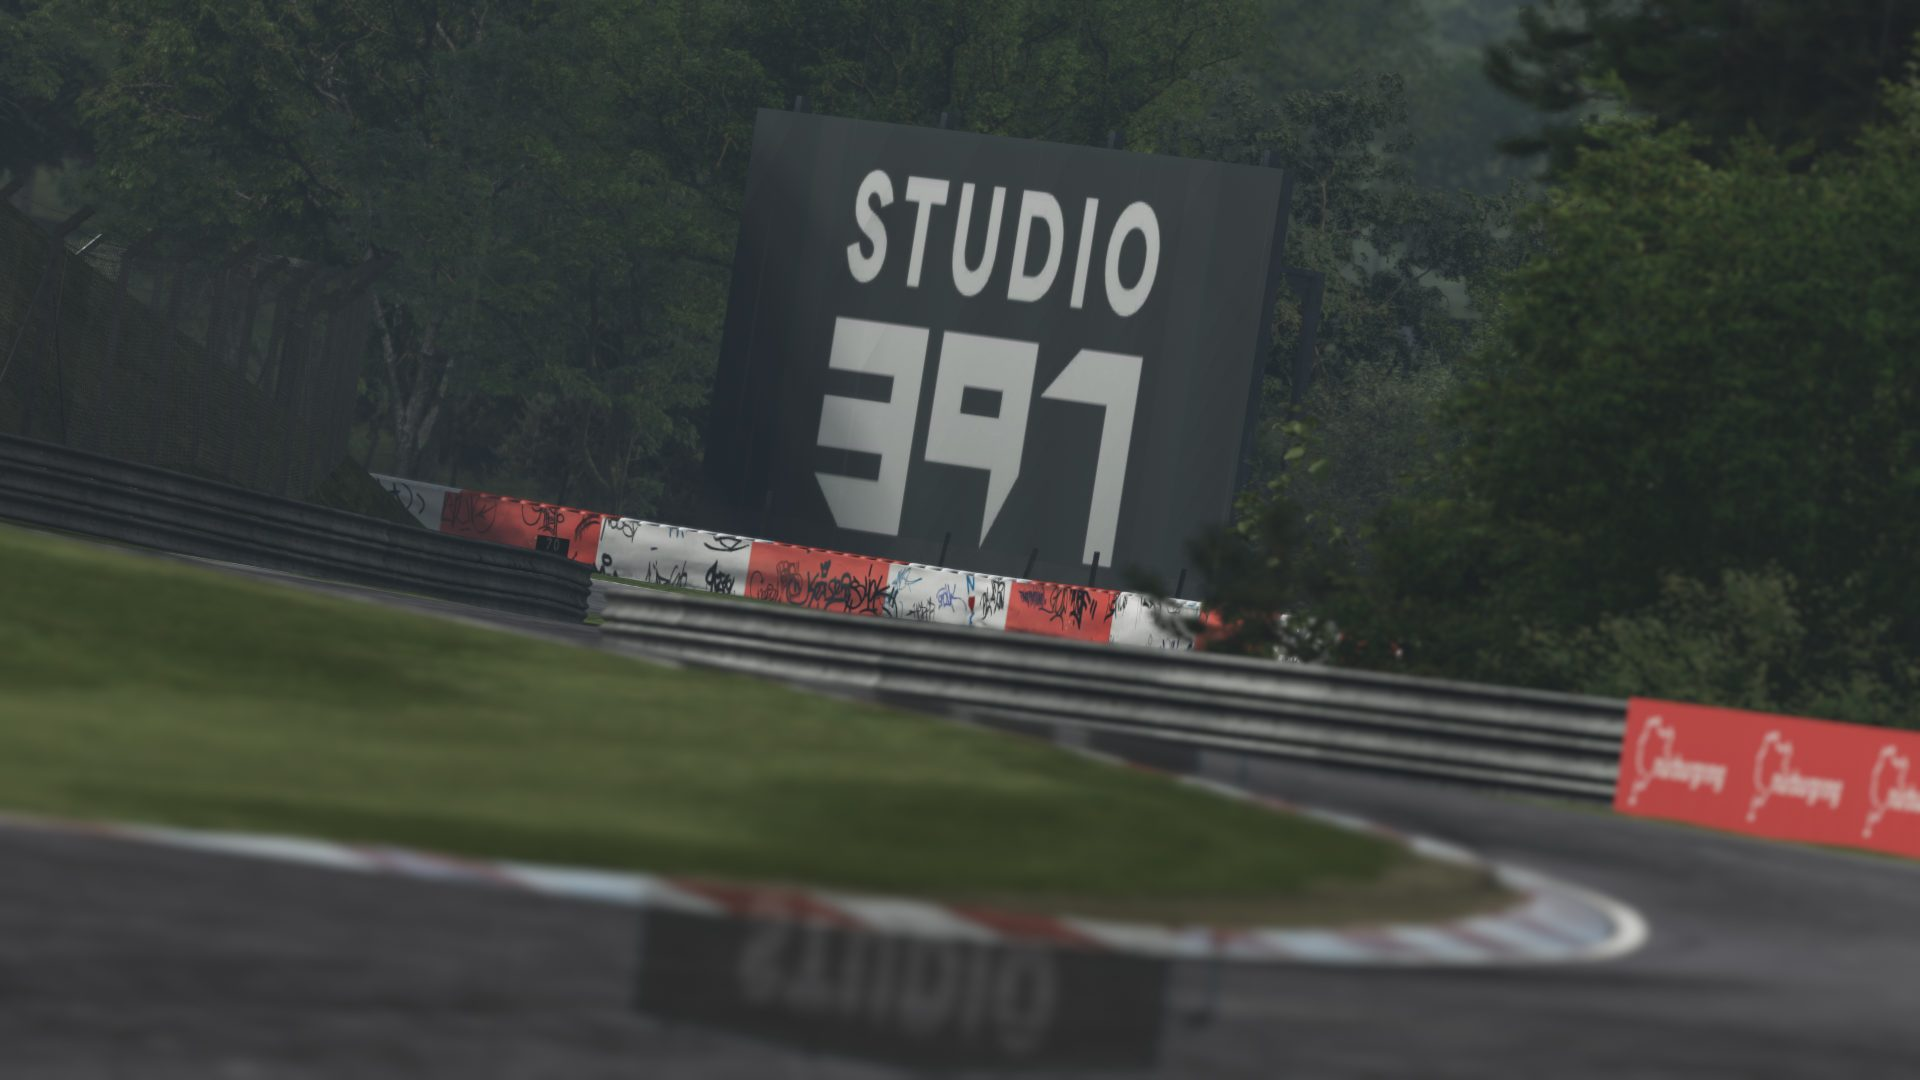 roadmap_september_nurburgring_01-1920x10